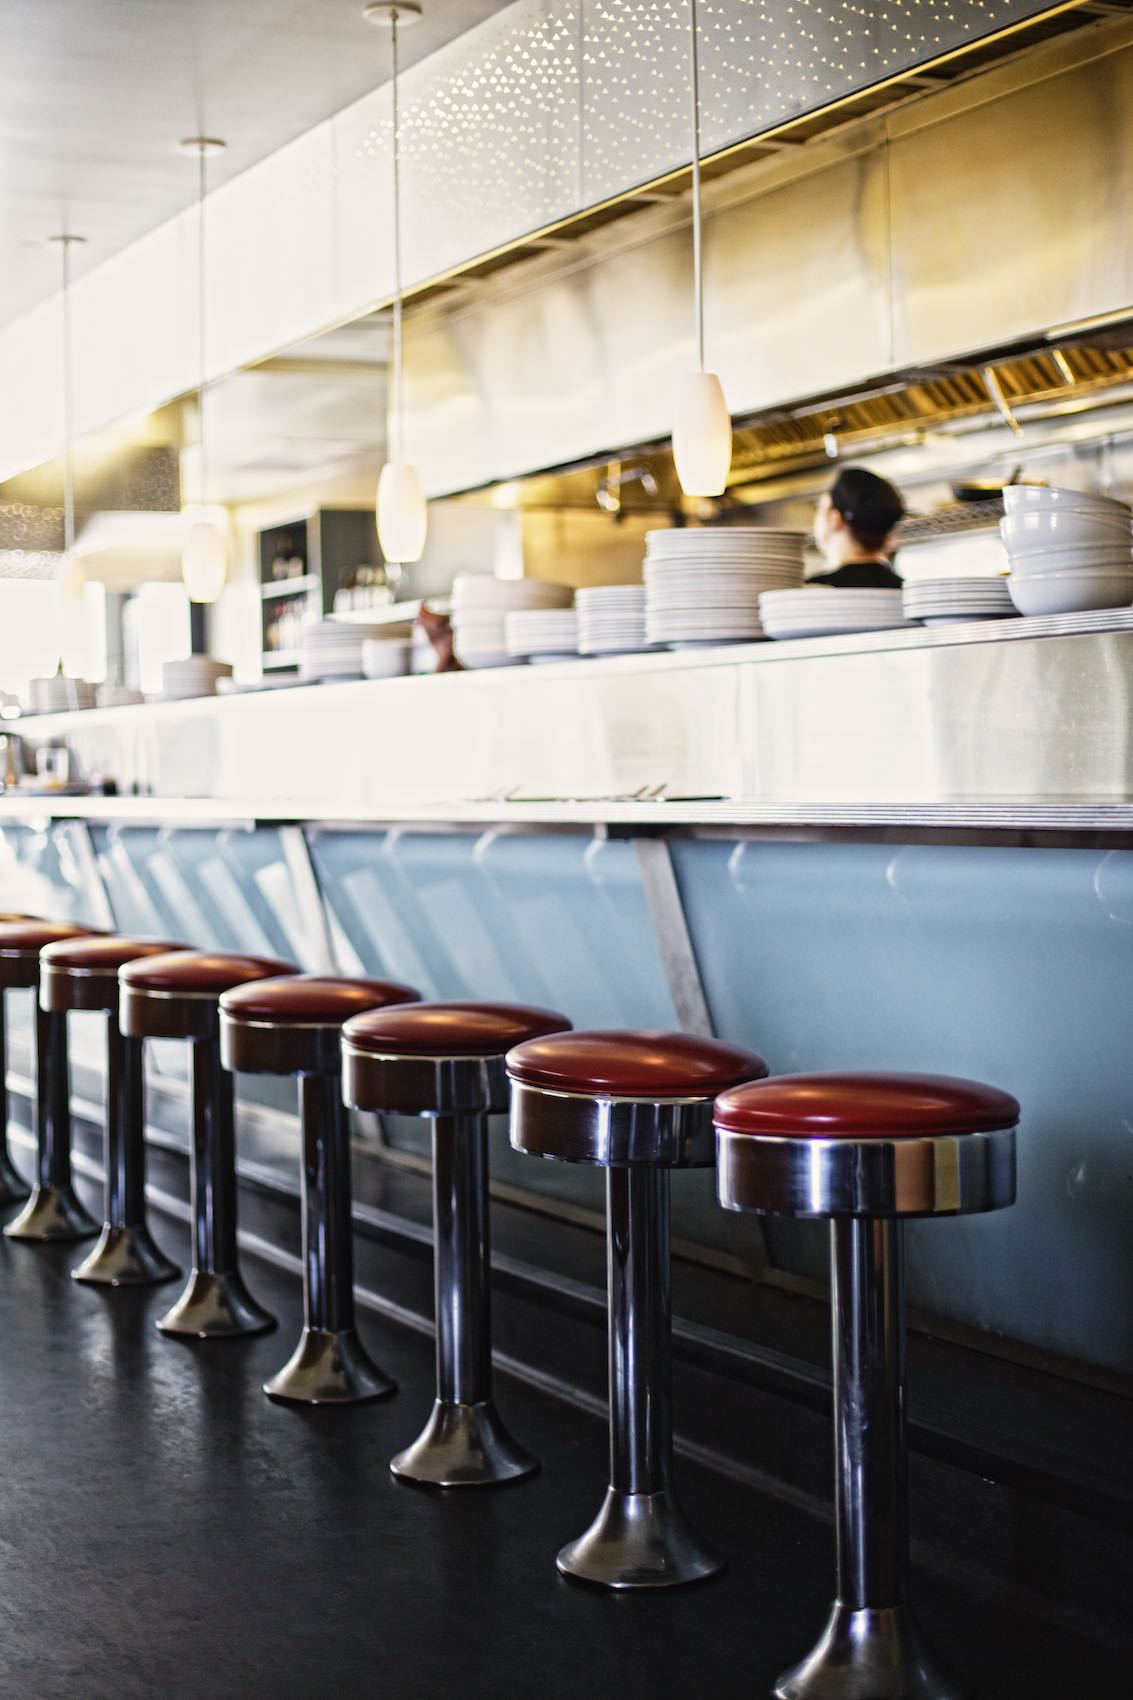 Jody Horton Photography - Brightly lit, diner bar with red stools and blue accents.